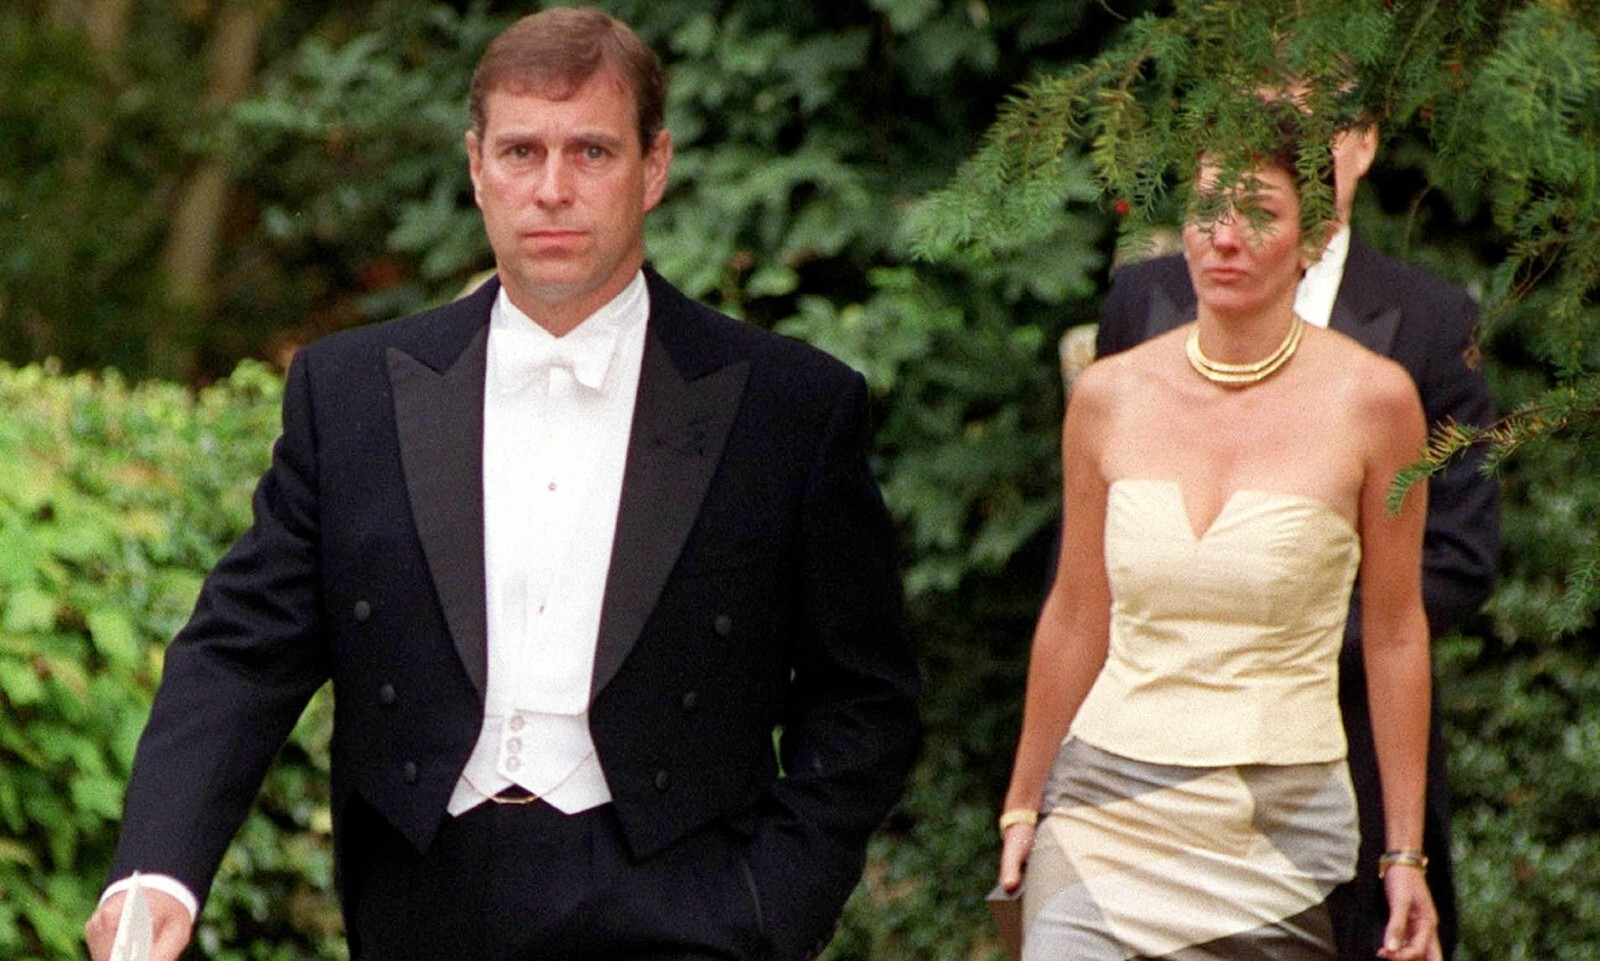 A former aquantience of socialite Ghislaine Maxwell says she'll do anything to not sell out The UK's Prince Andrew, Duke of York.